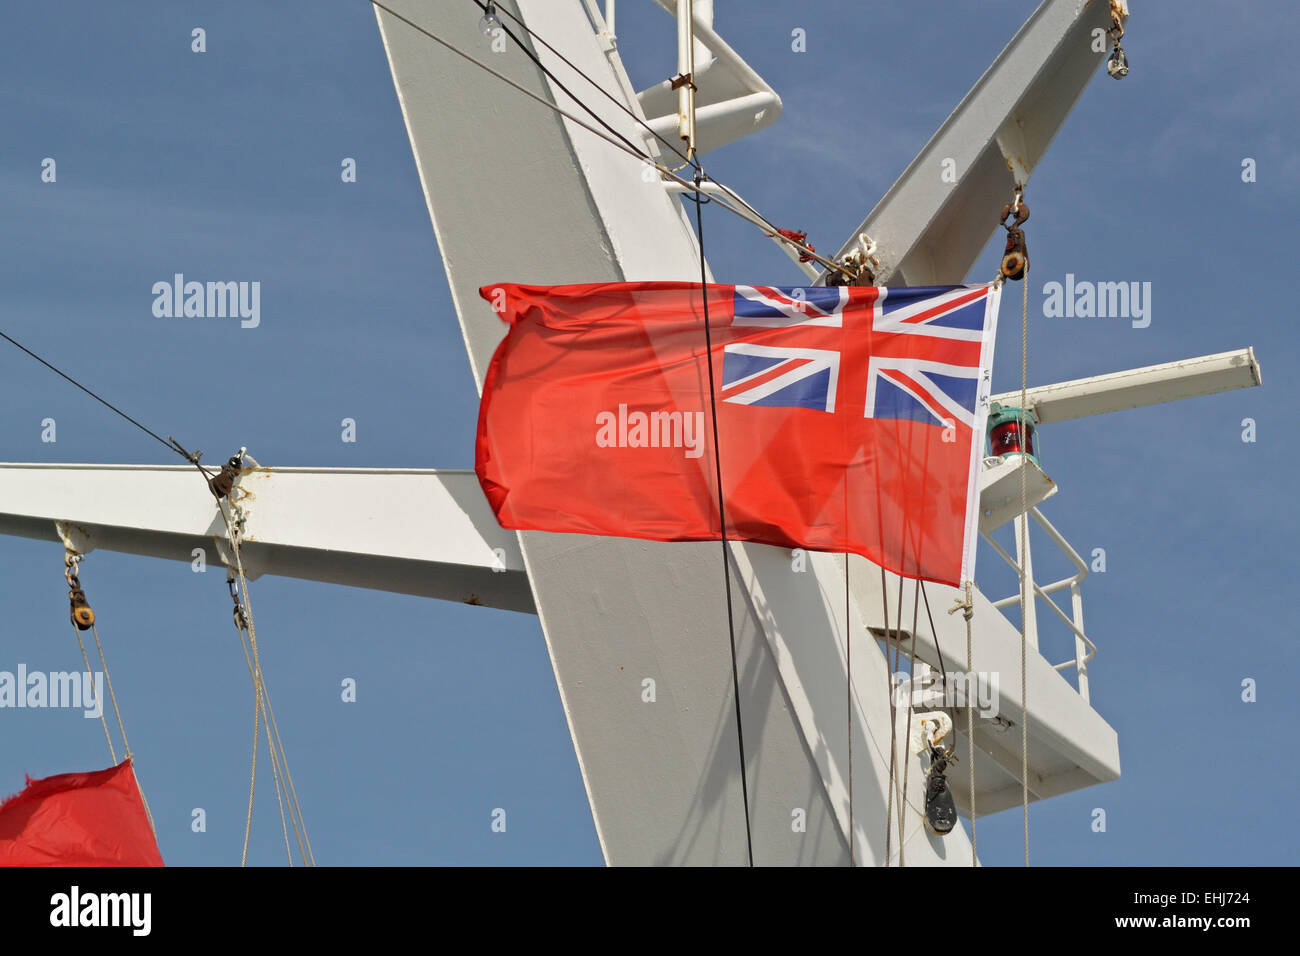 Red ensign on mast of Cruise & Maritime Voyages flagship Magellan Stock Photo